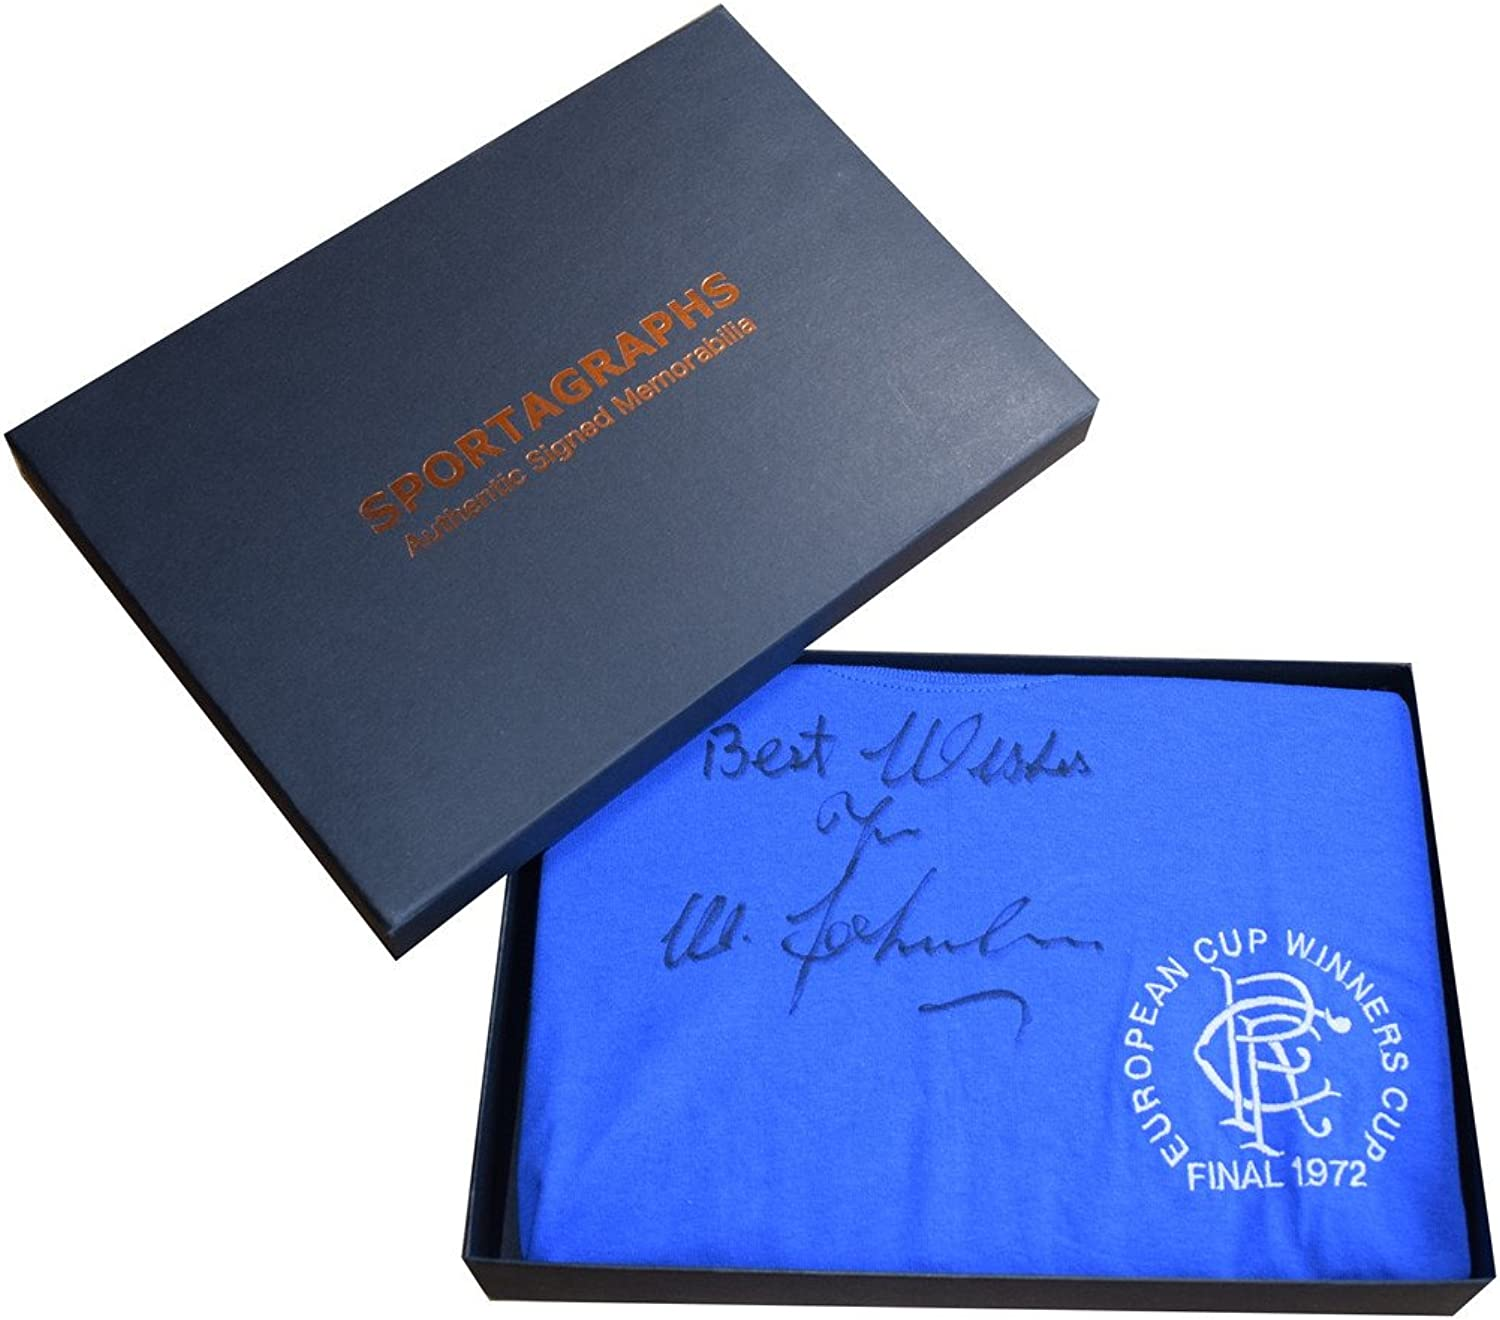 Sportagraphs Willie Johnston SIGNED Rangers New Shirt Autograph Gift Box Football AFTAL COA PERFECT GIFT